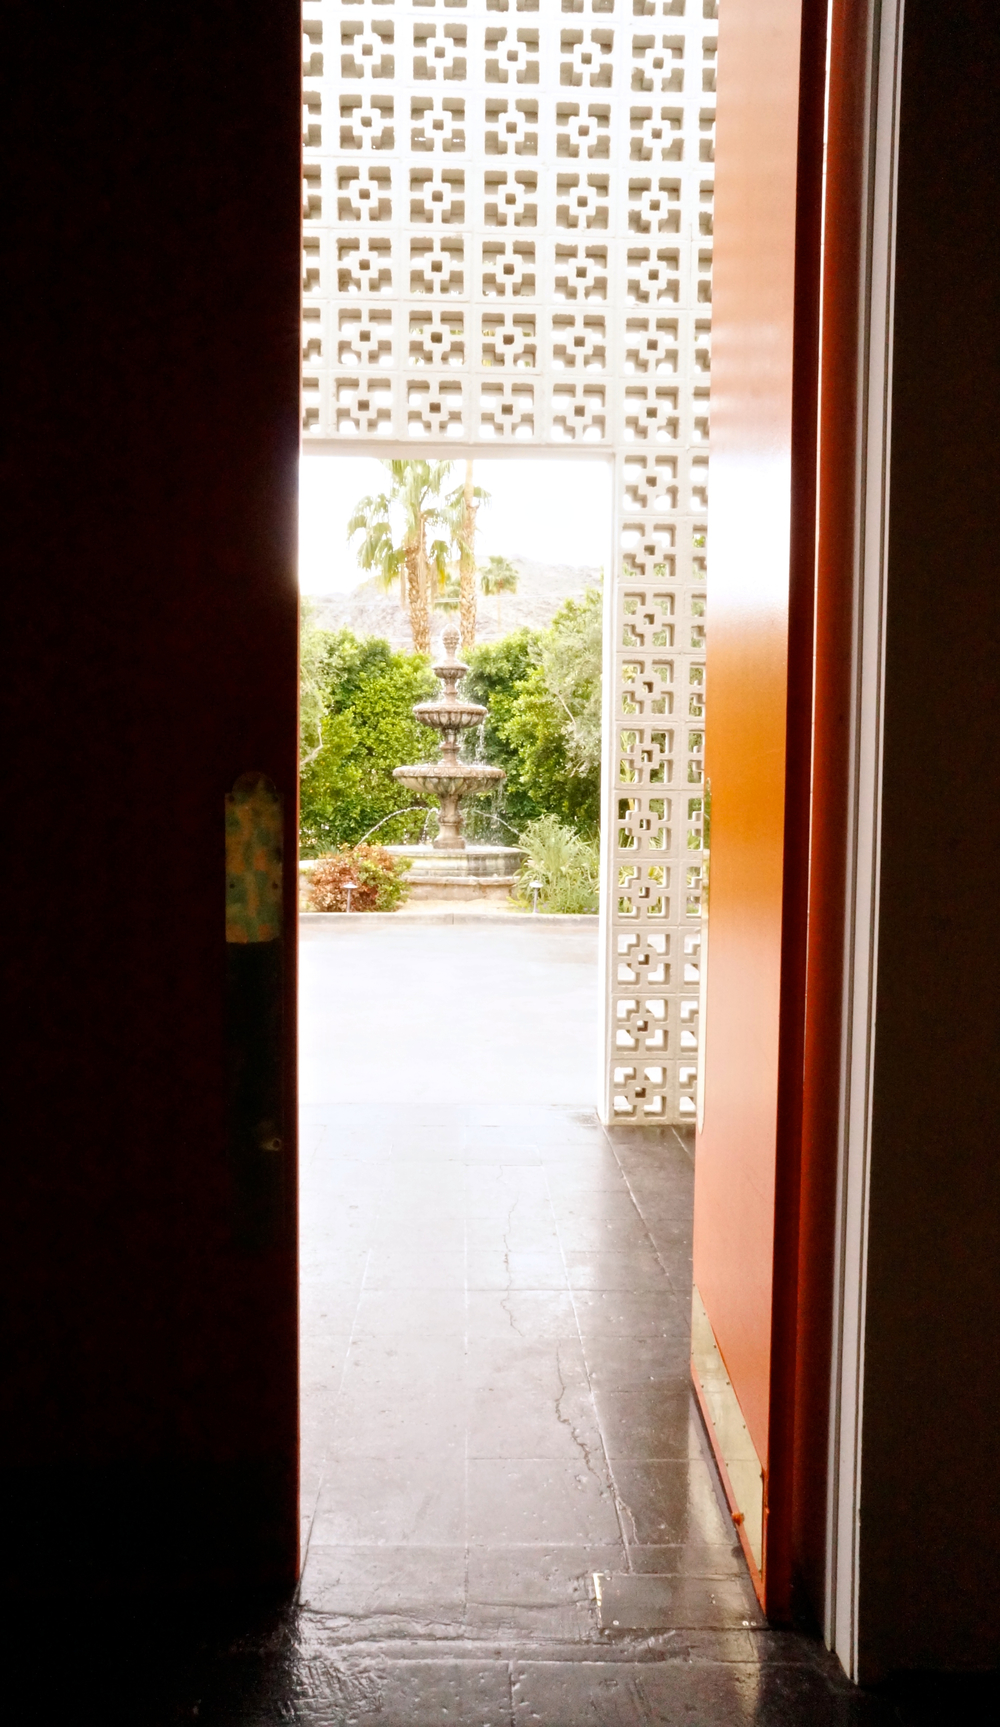 parker-palm-springs-door.jpg